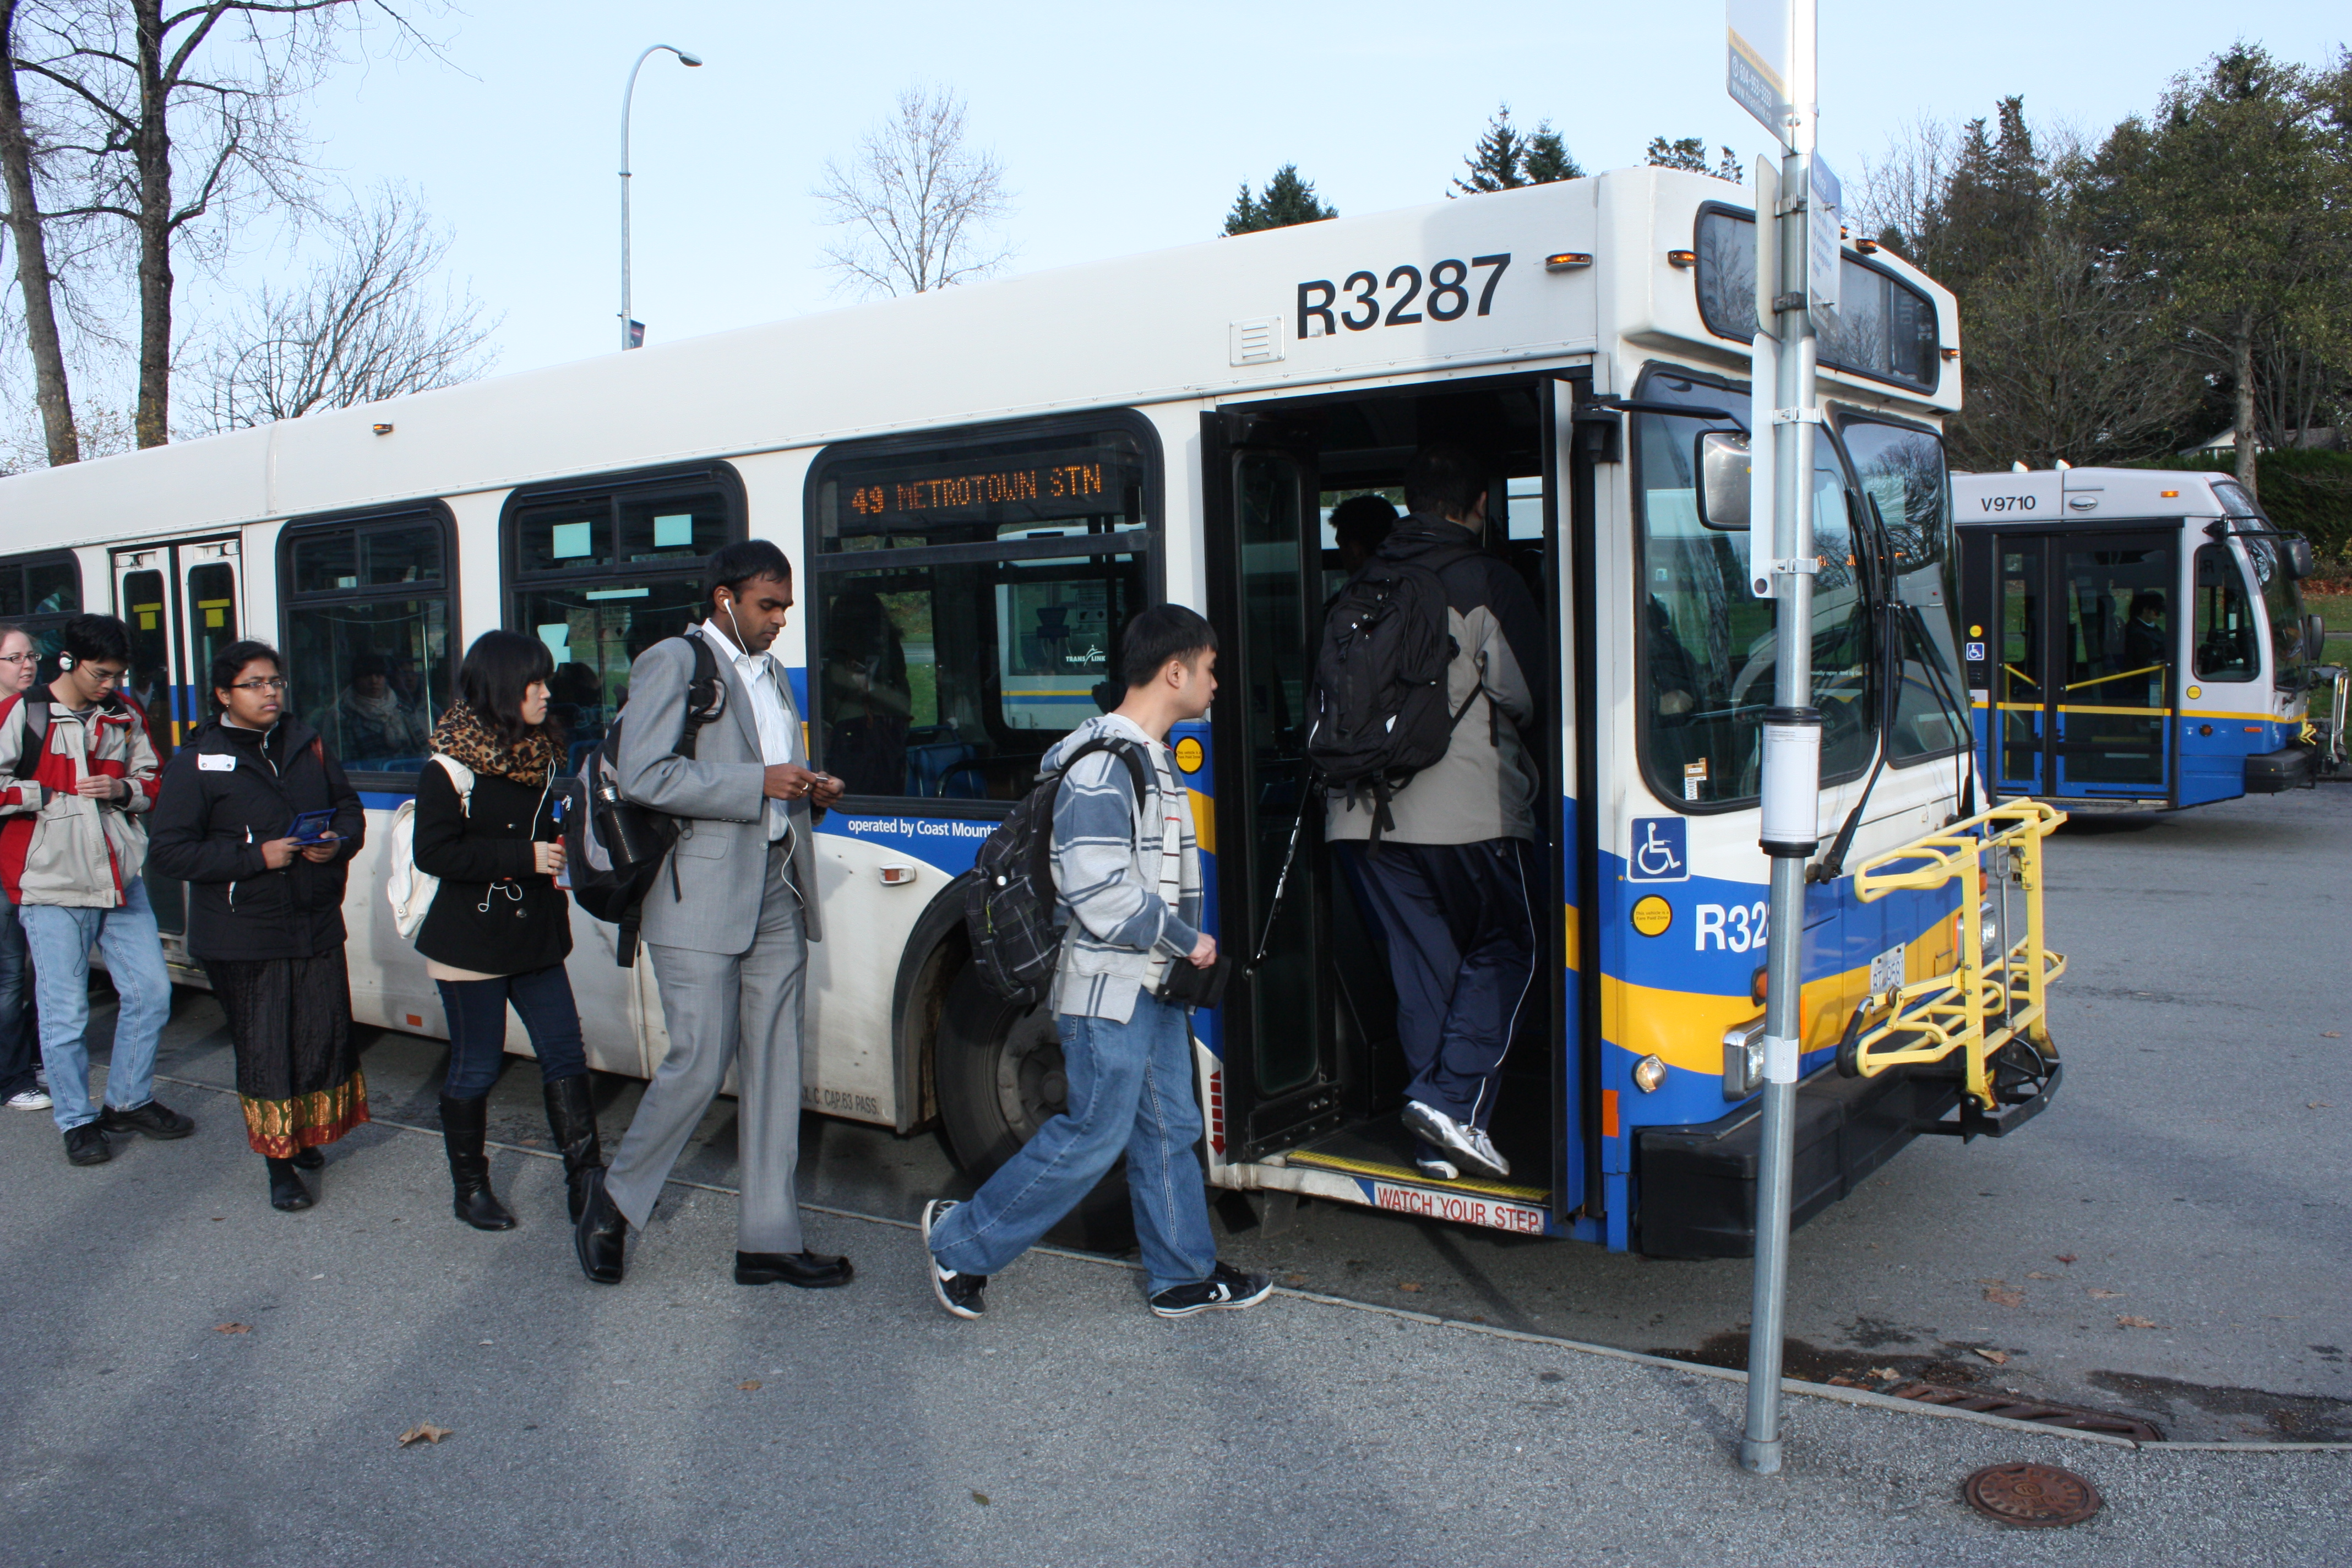 THE PRICE OF A TICKET: Who's Driving the Bus